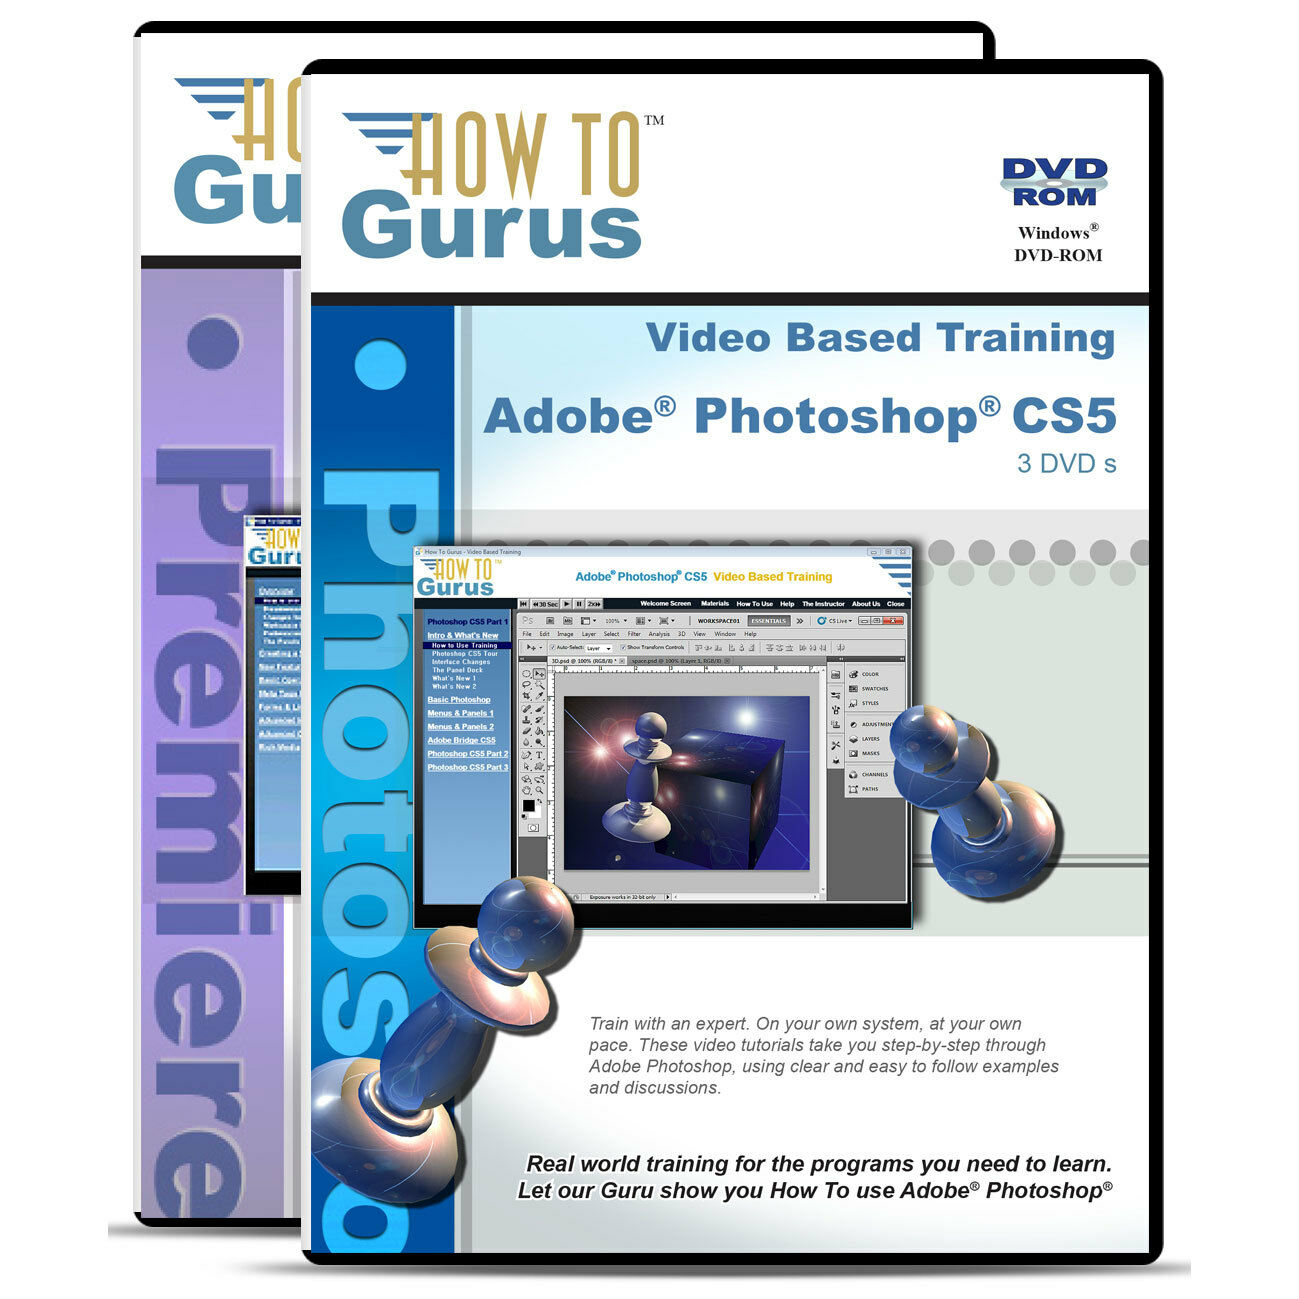 Adobe photoshop cs5 and premiere pro cs4 tutorial training 5 dvds picture 1 of 1 baditri Choice Image